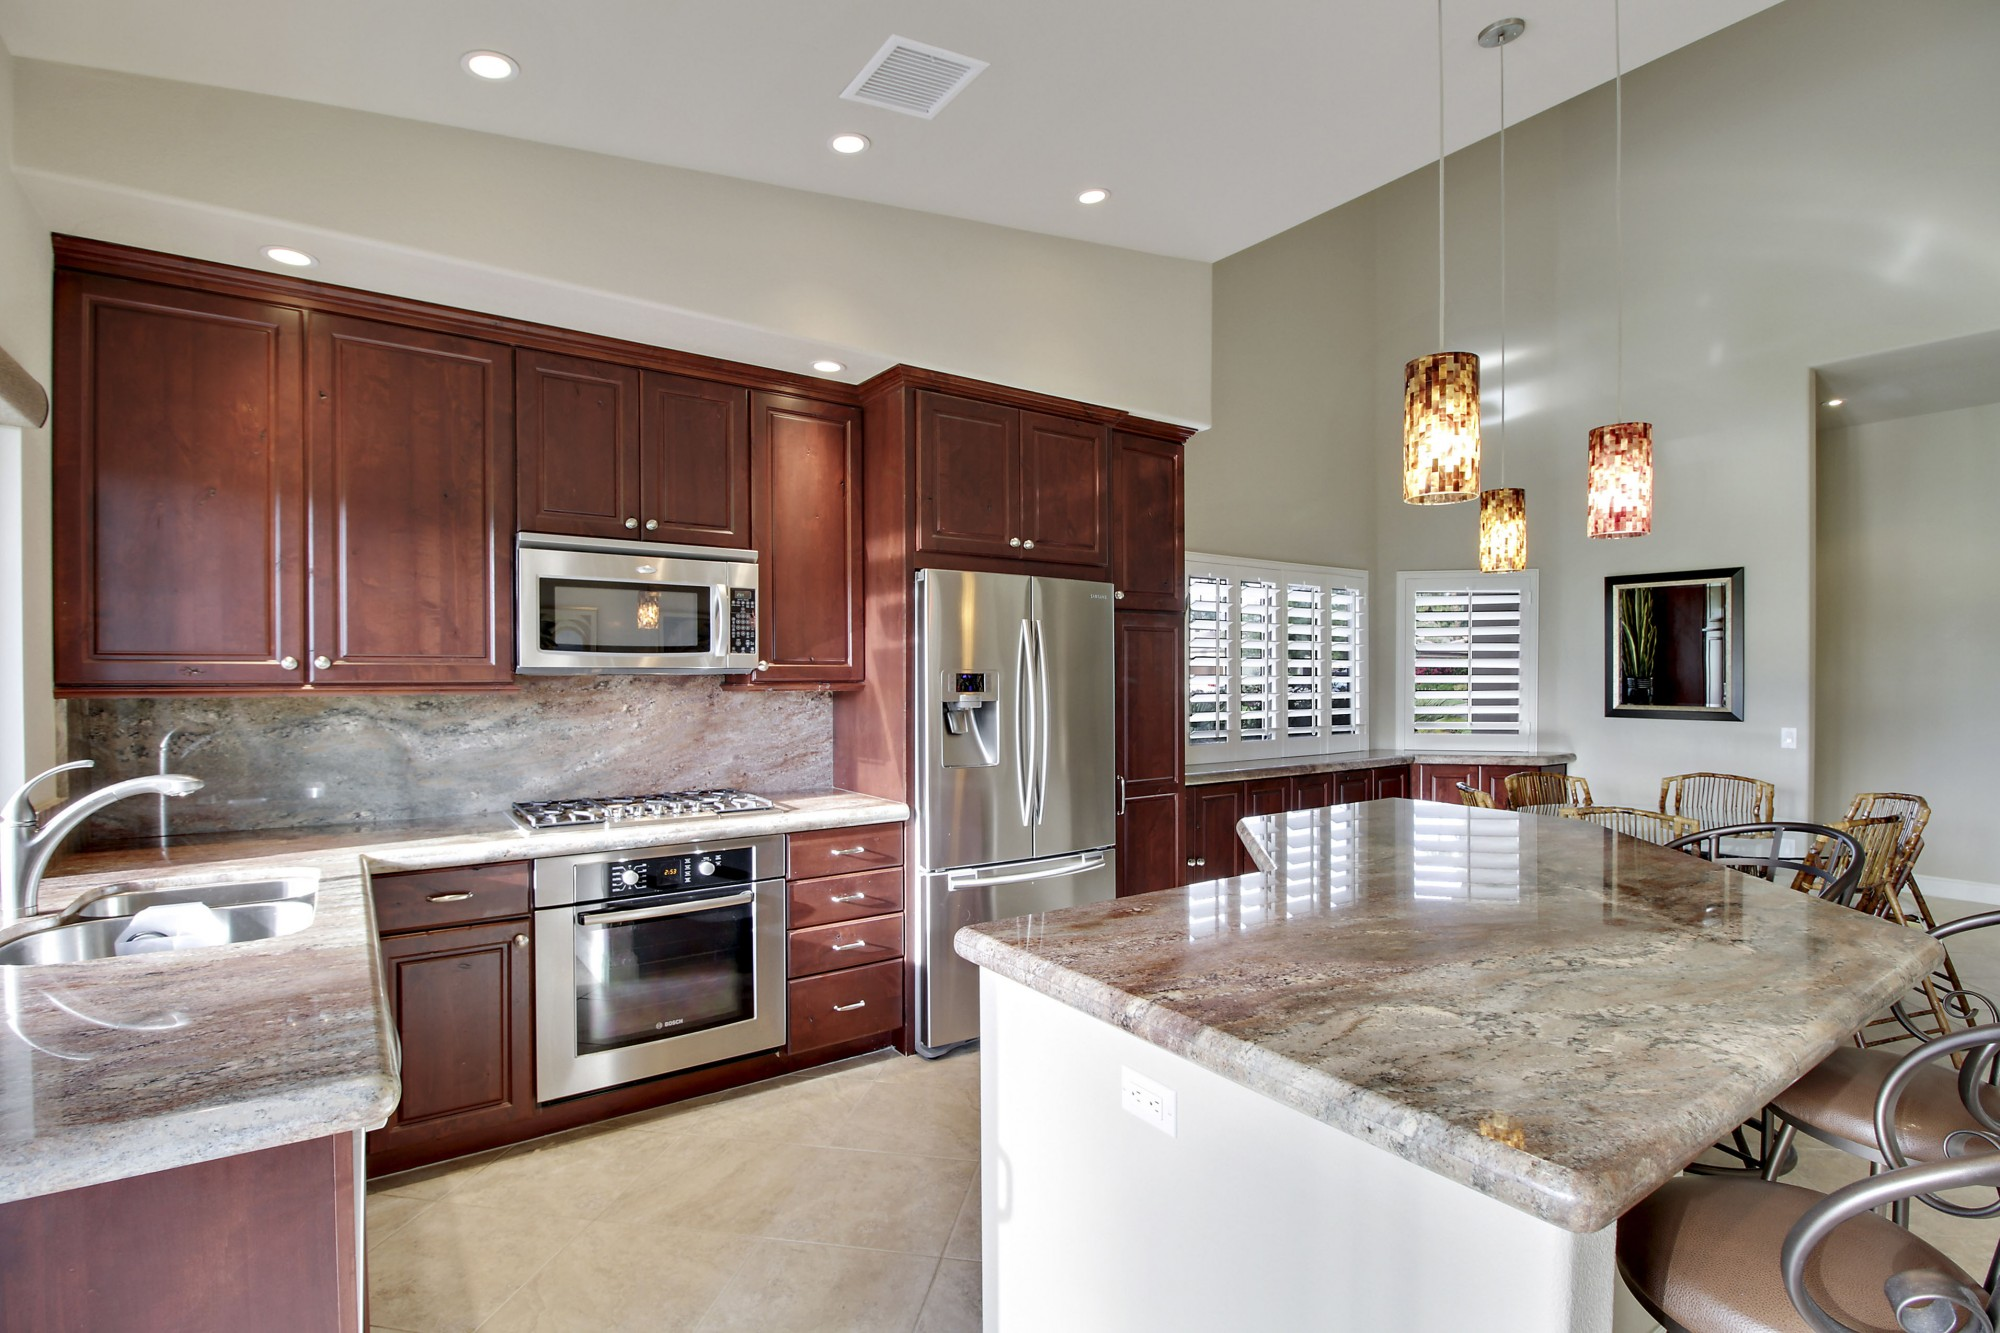 Remodeled kitchen with stainless steel appliances and granite countertops